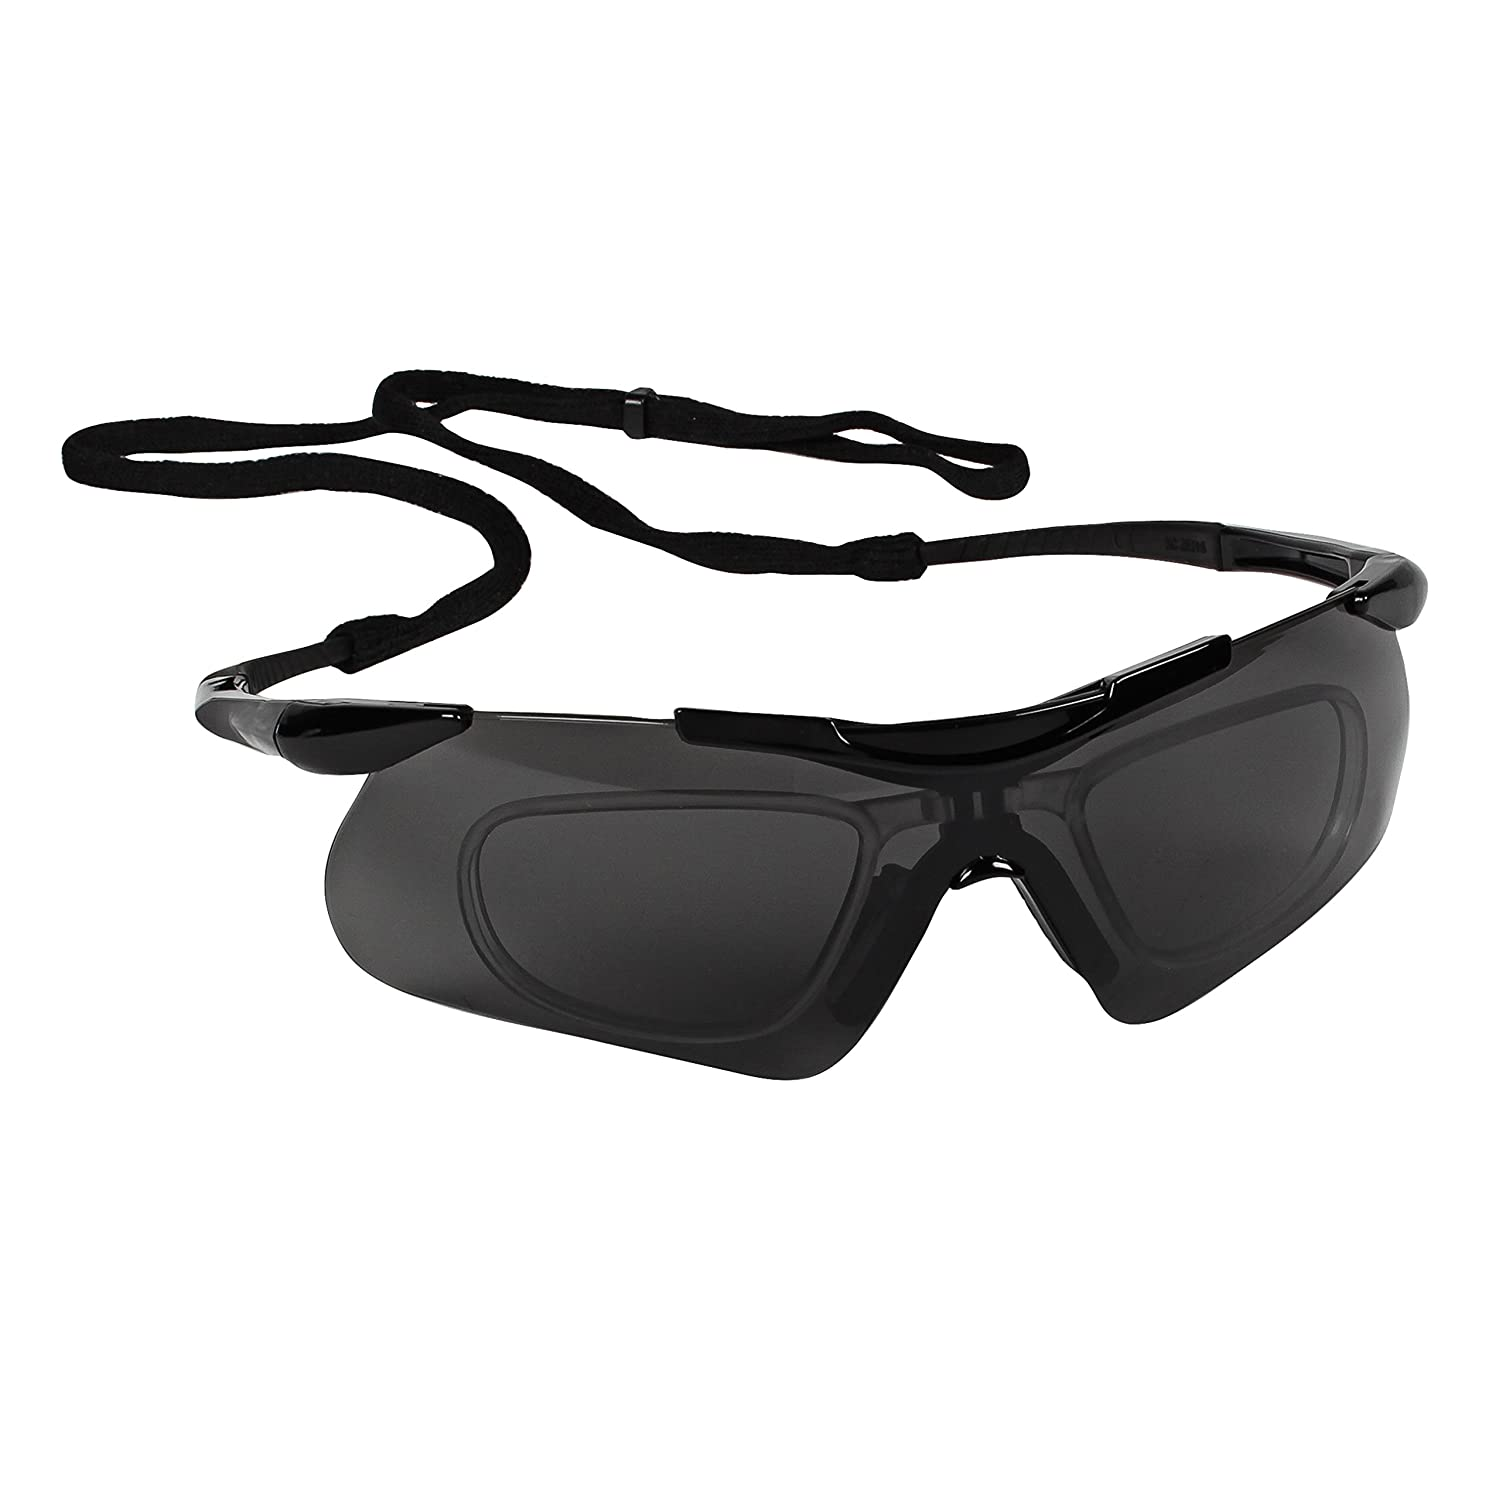 3c5d8c2f7d Jackson Safety 38505 V60 Safeview Safety Glasses with RX Inserts ...